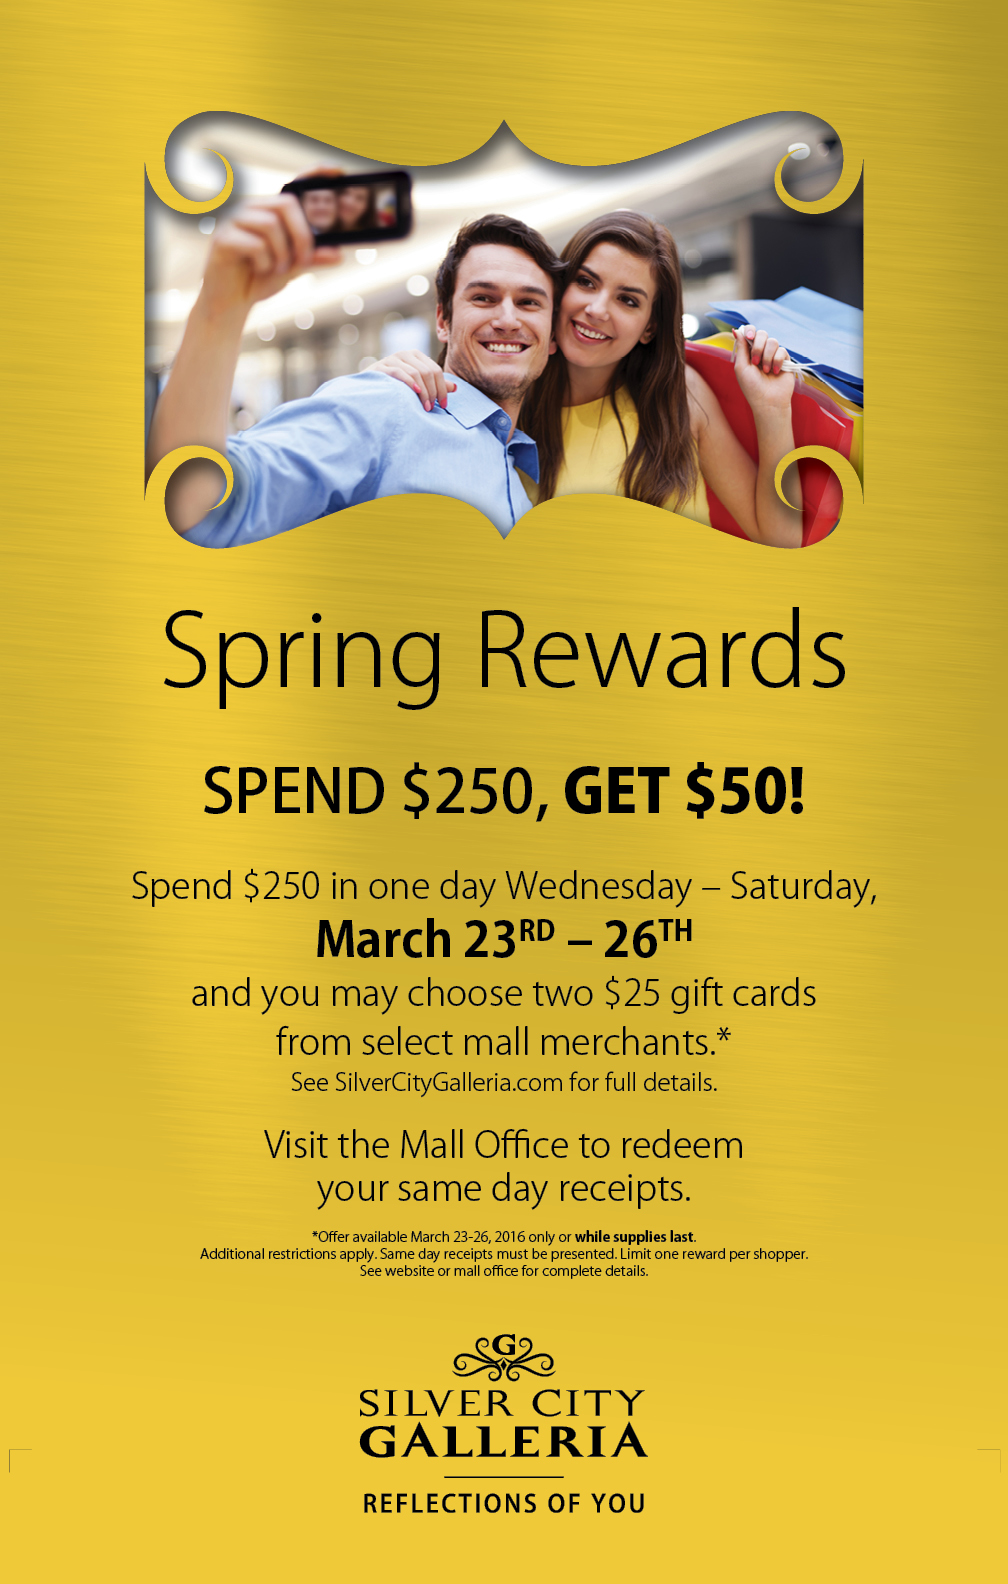 Spring Rewards Ad Design for Silver City Galleria by Cybergraph®